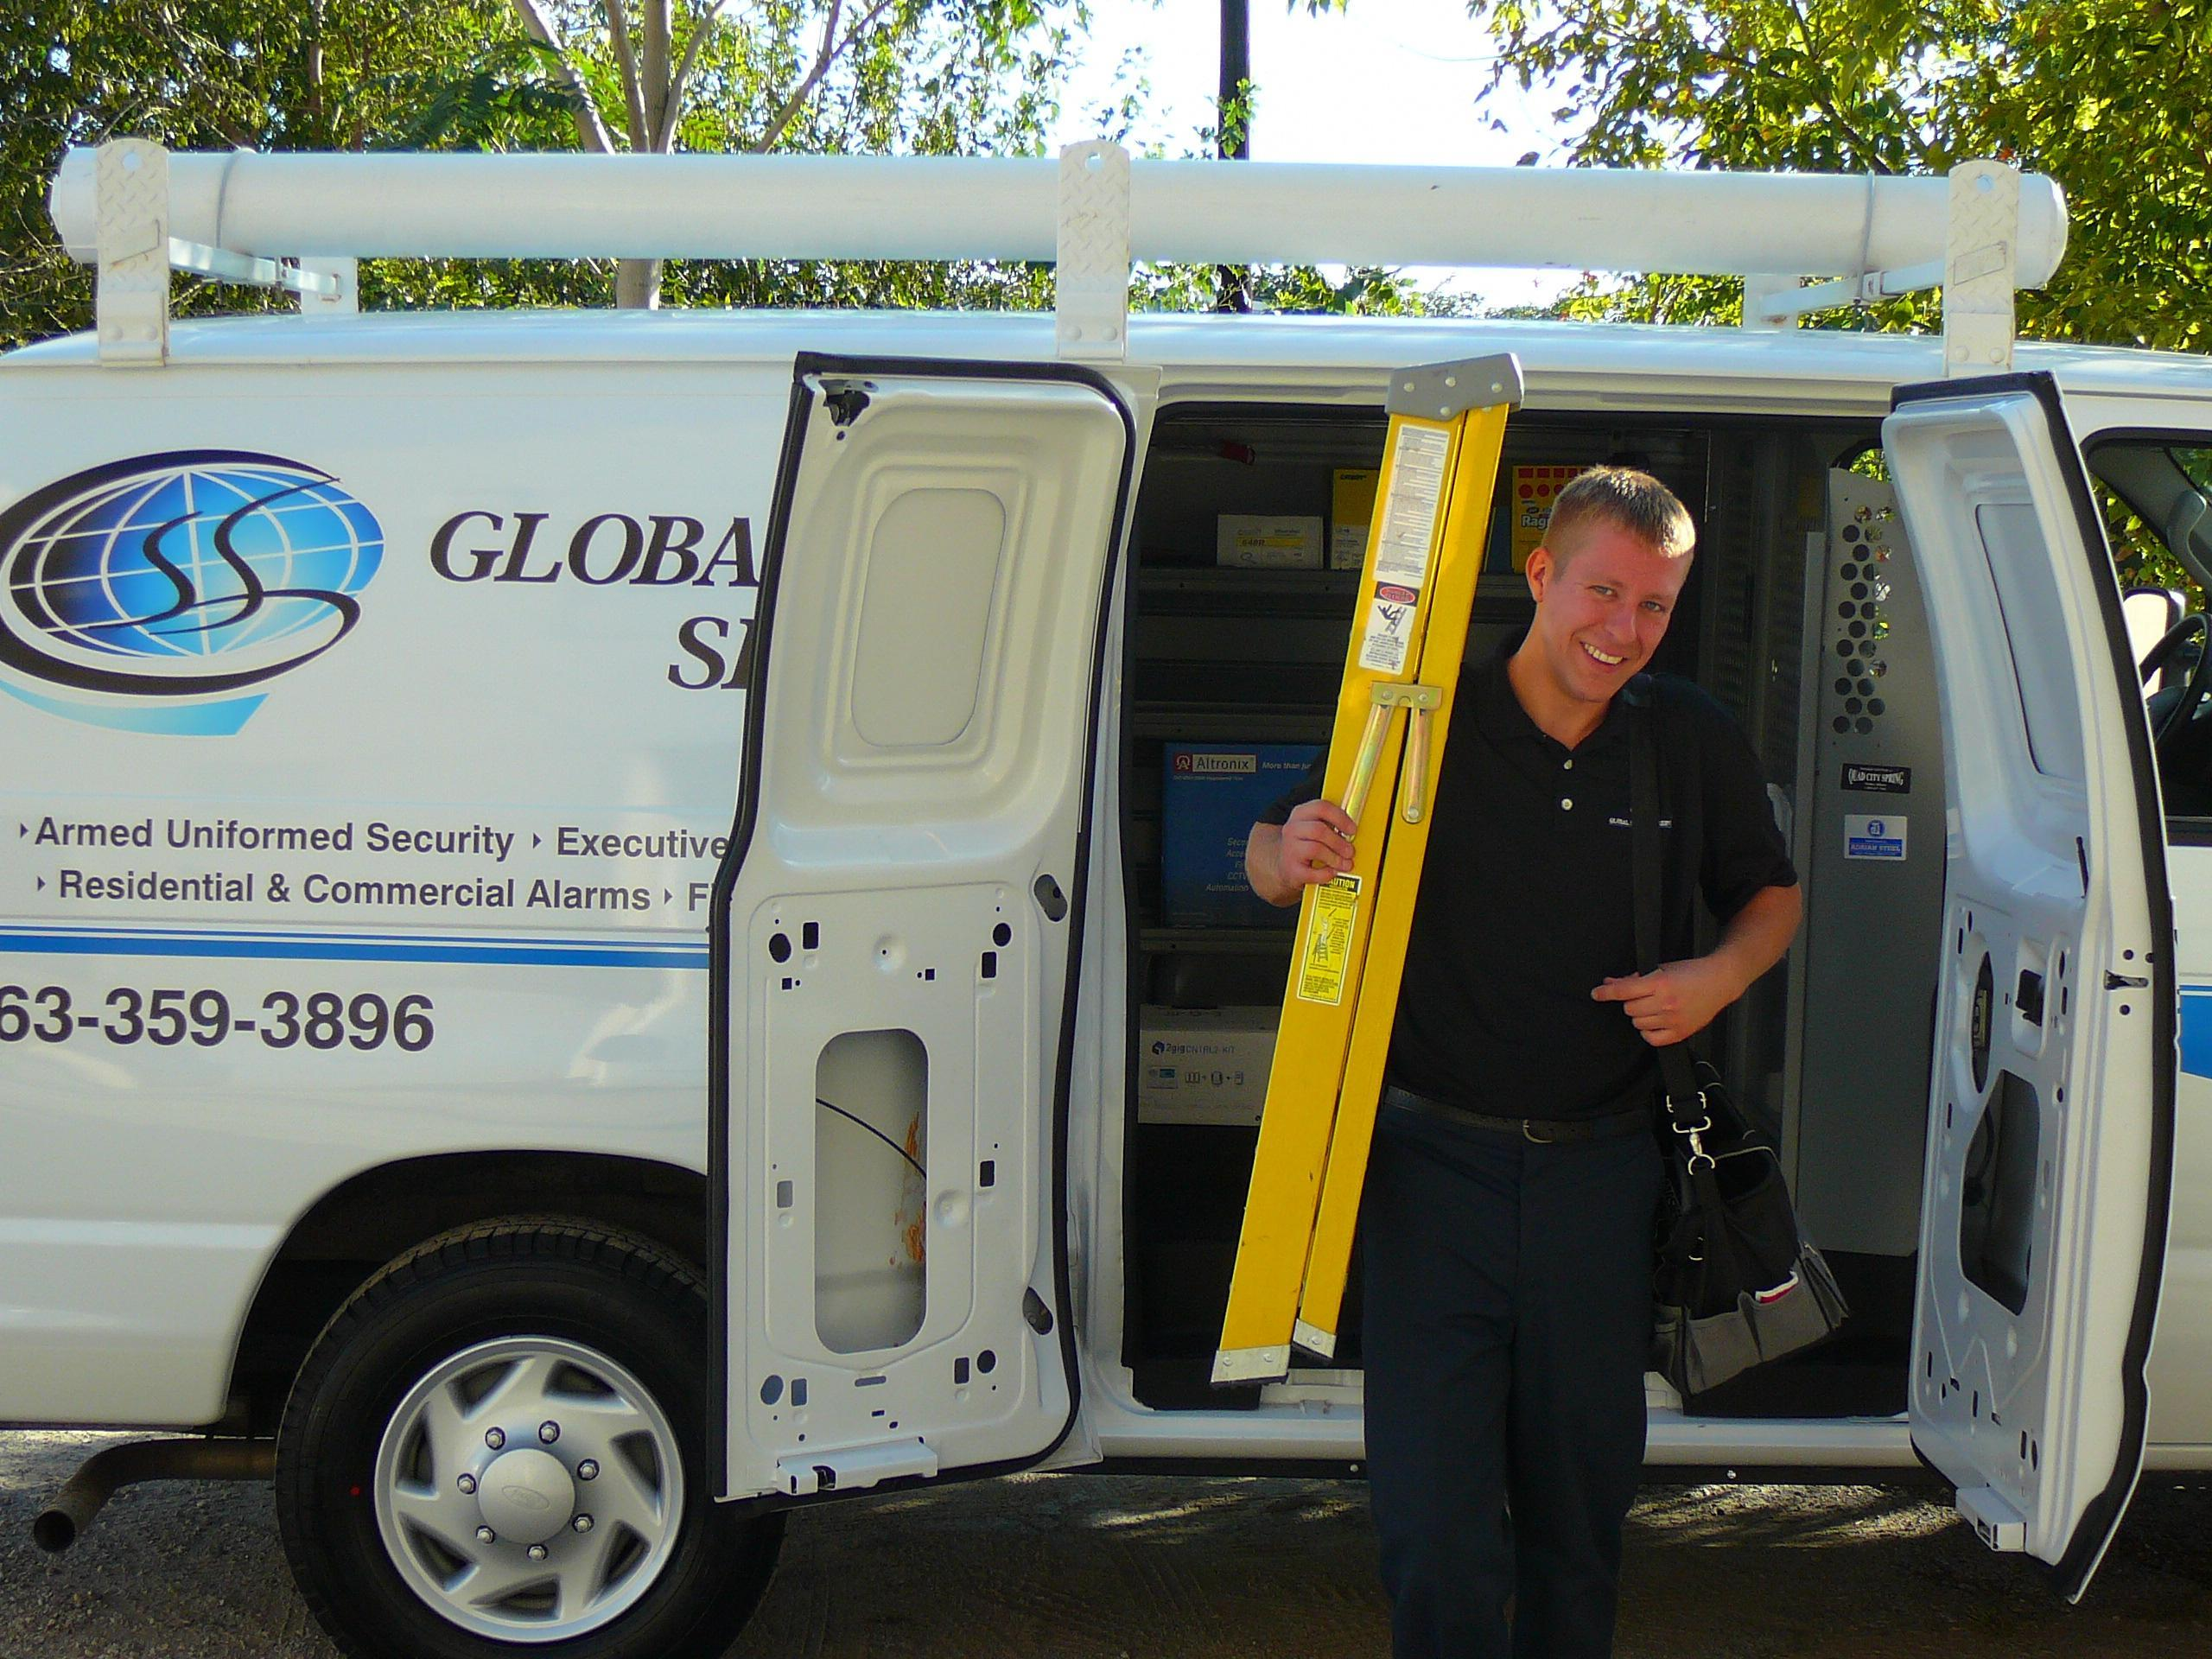 Global Security Services - ad image